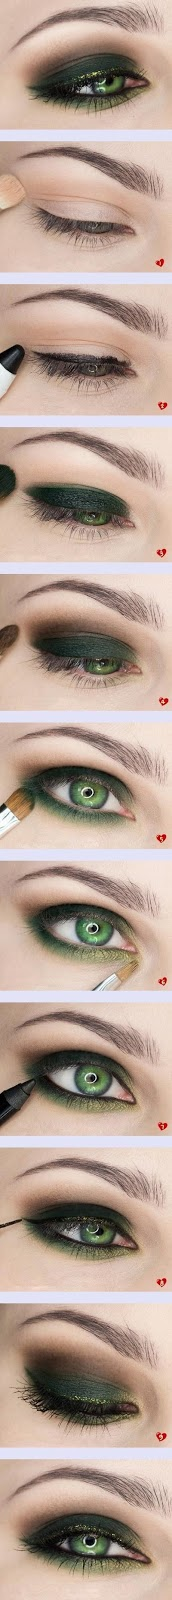 smokey eye shadow makeup idea for ladies